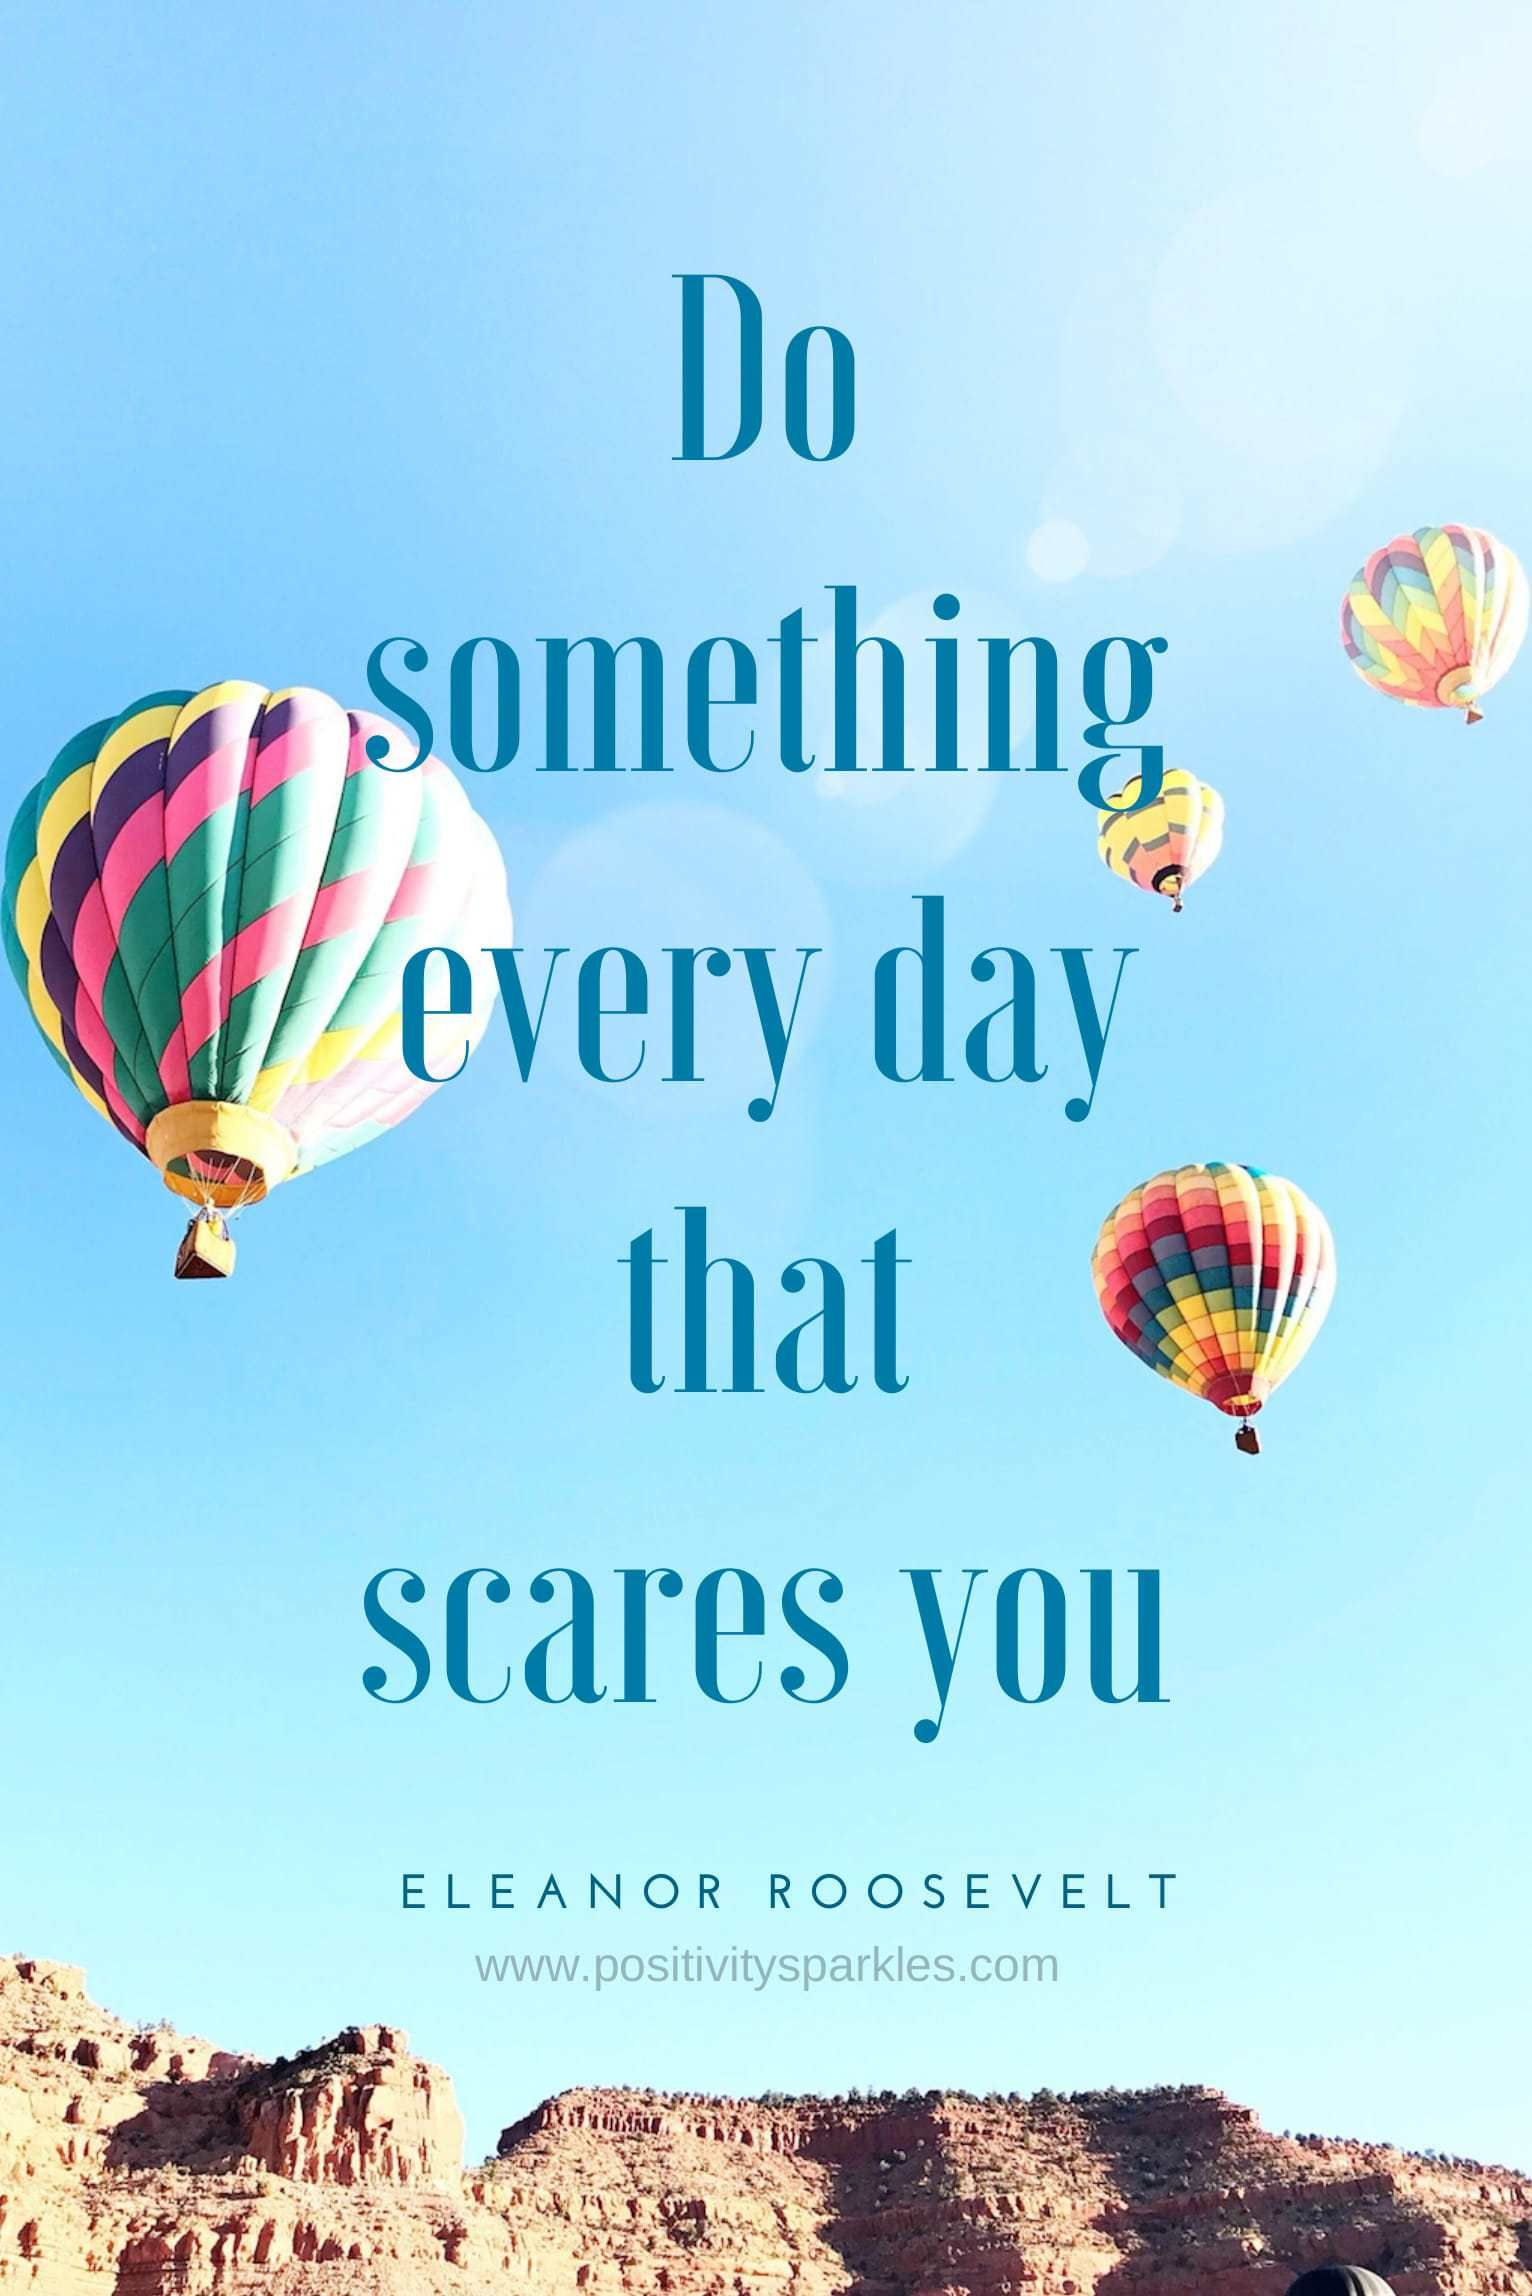 Do something every day that scares you here are the top 5 quotes to live by visit www positivitysparkles com for more quotes and inspiration